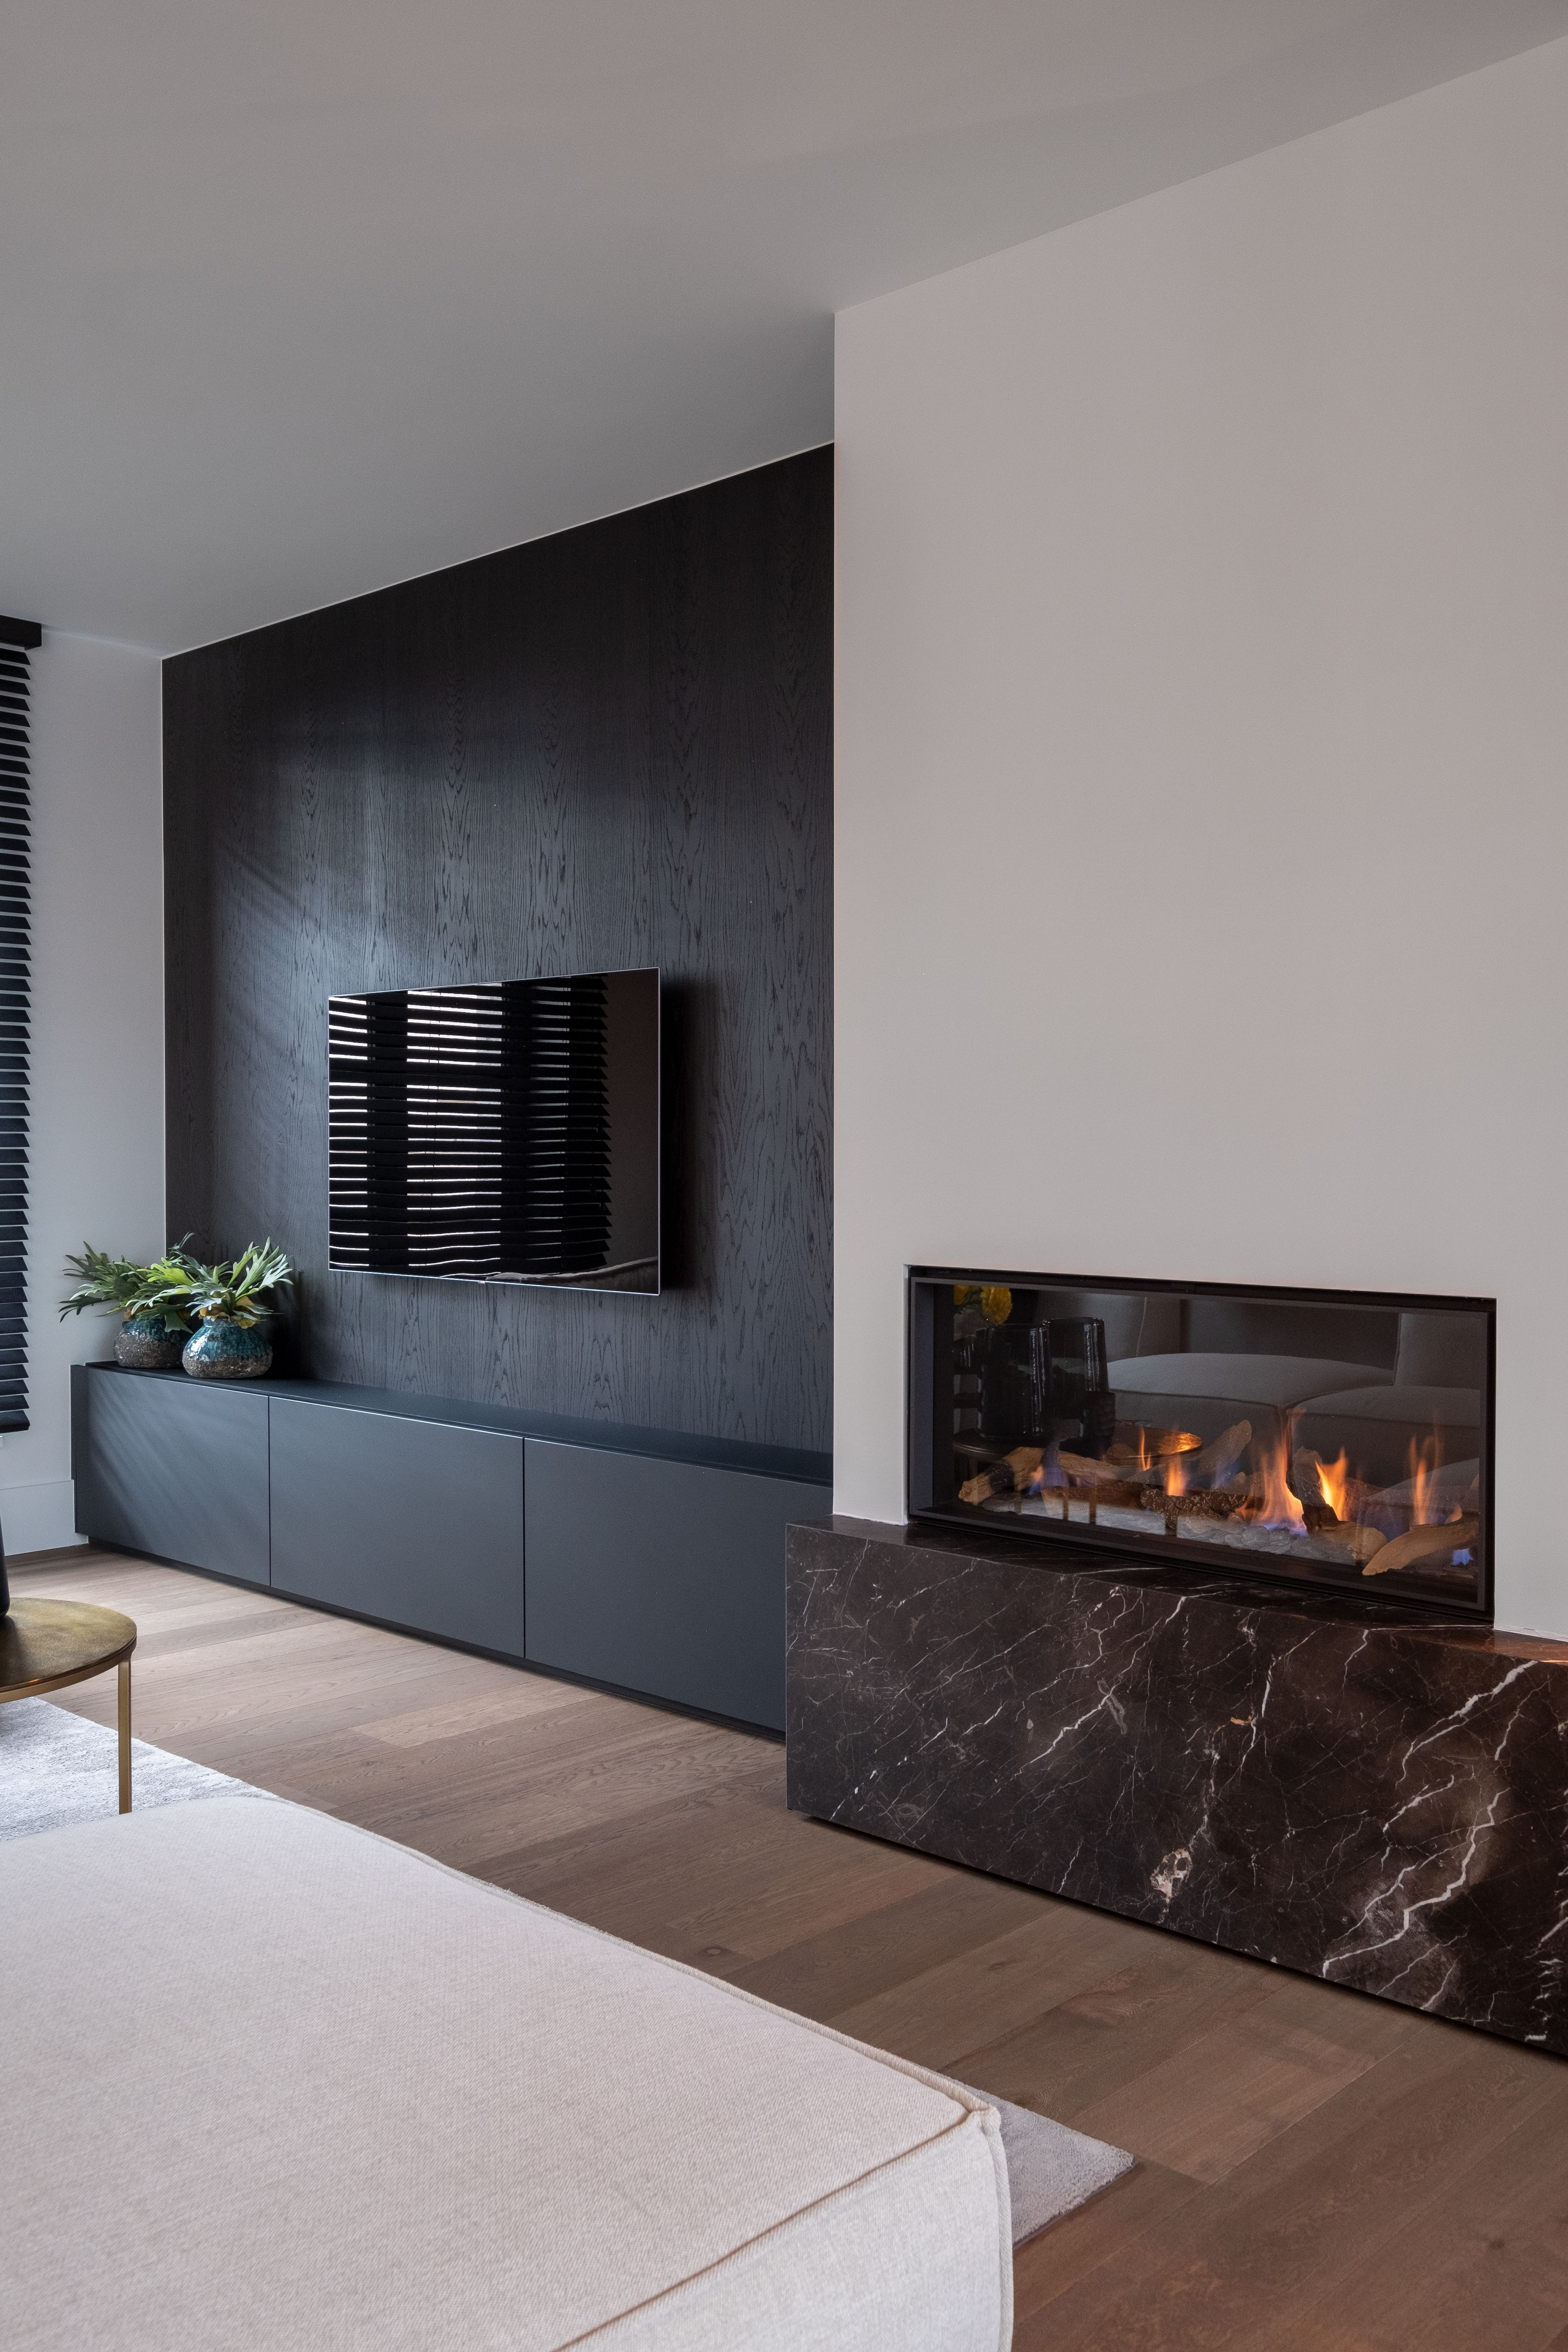 Pin On Livingroom Ideas #small #living #room #layout #with #fireplace #and #tv #on #different #walls